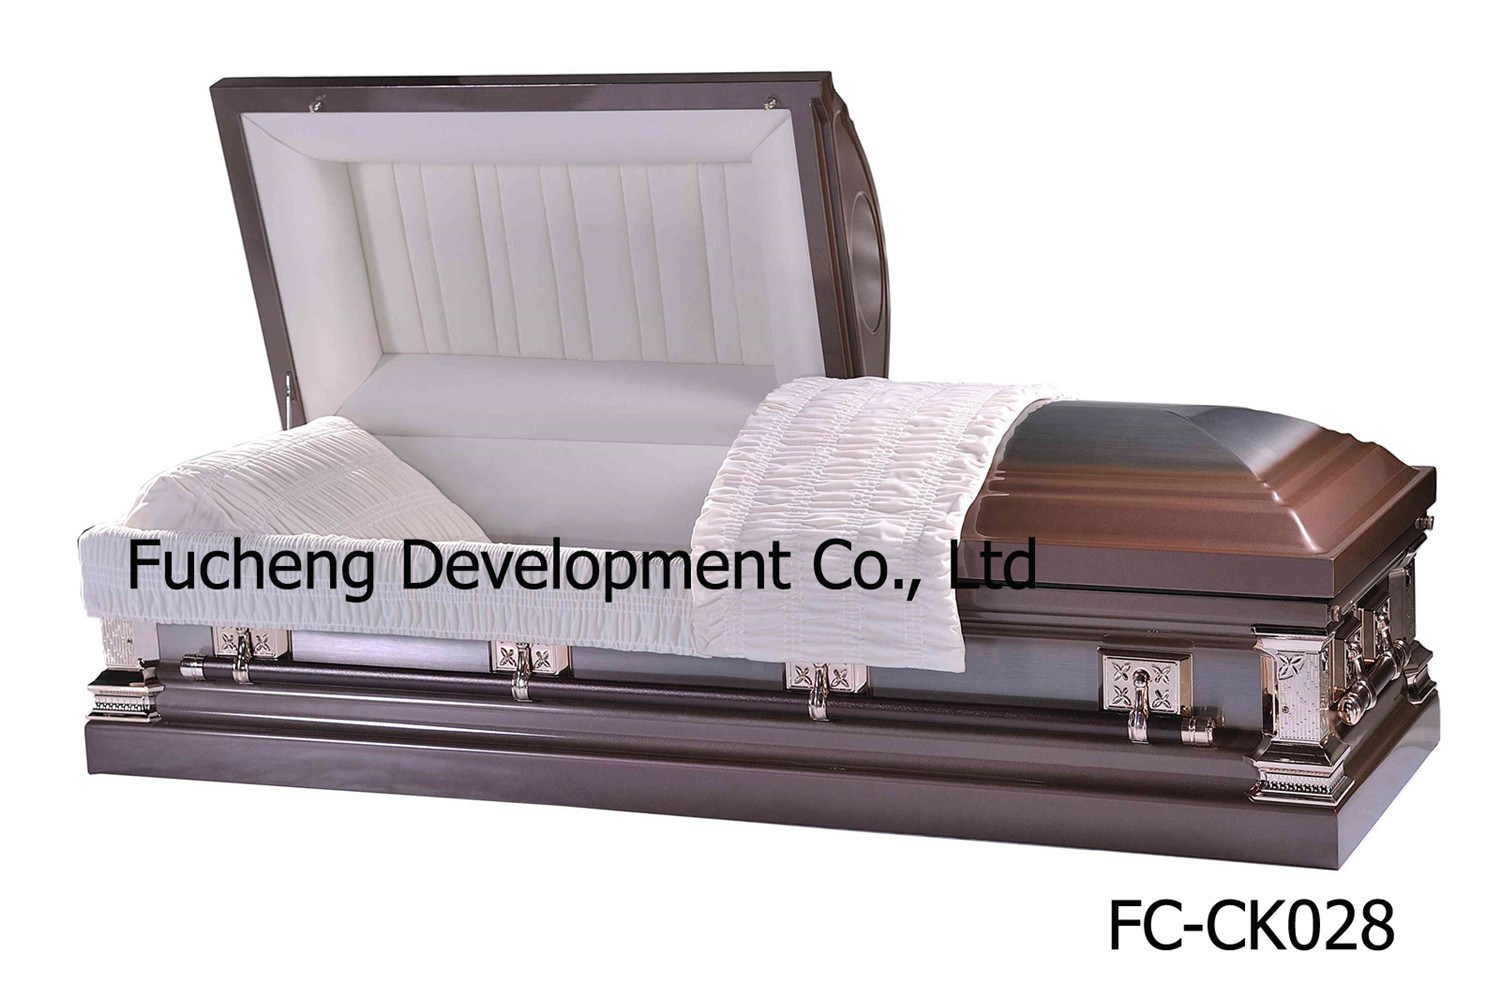 18ga American Style Steel Metal Funeral Caskets Coffin - Black Brushed Natural Finish & White Velvet Interiors (FC-CK027)